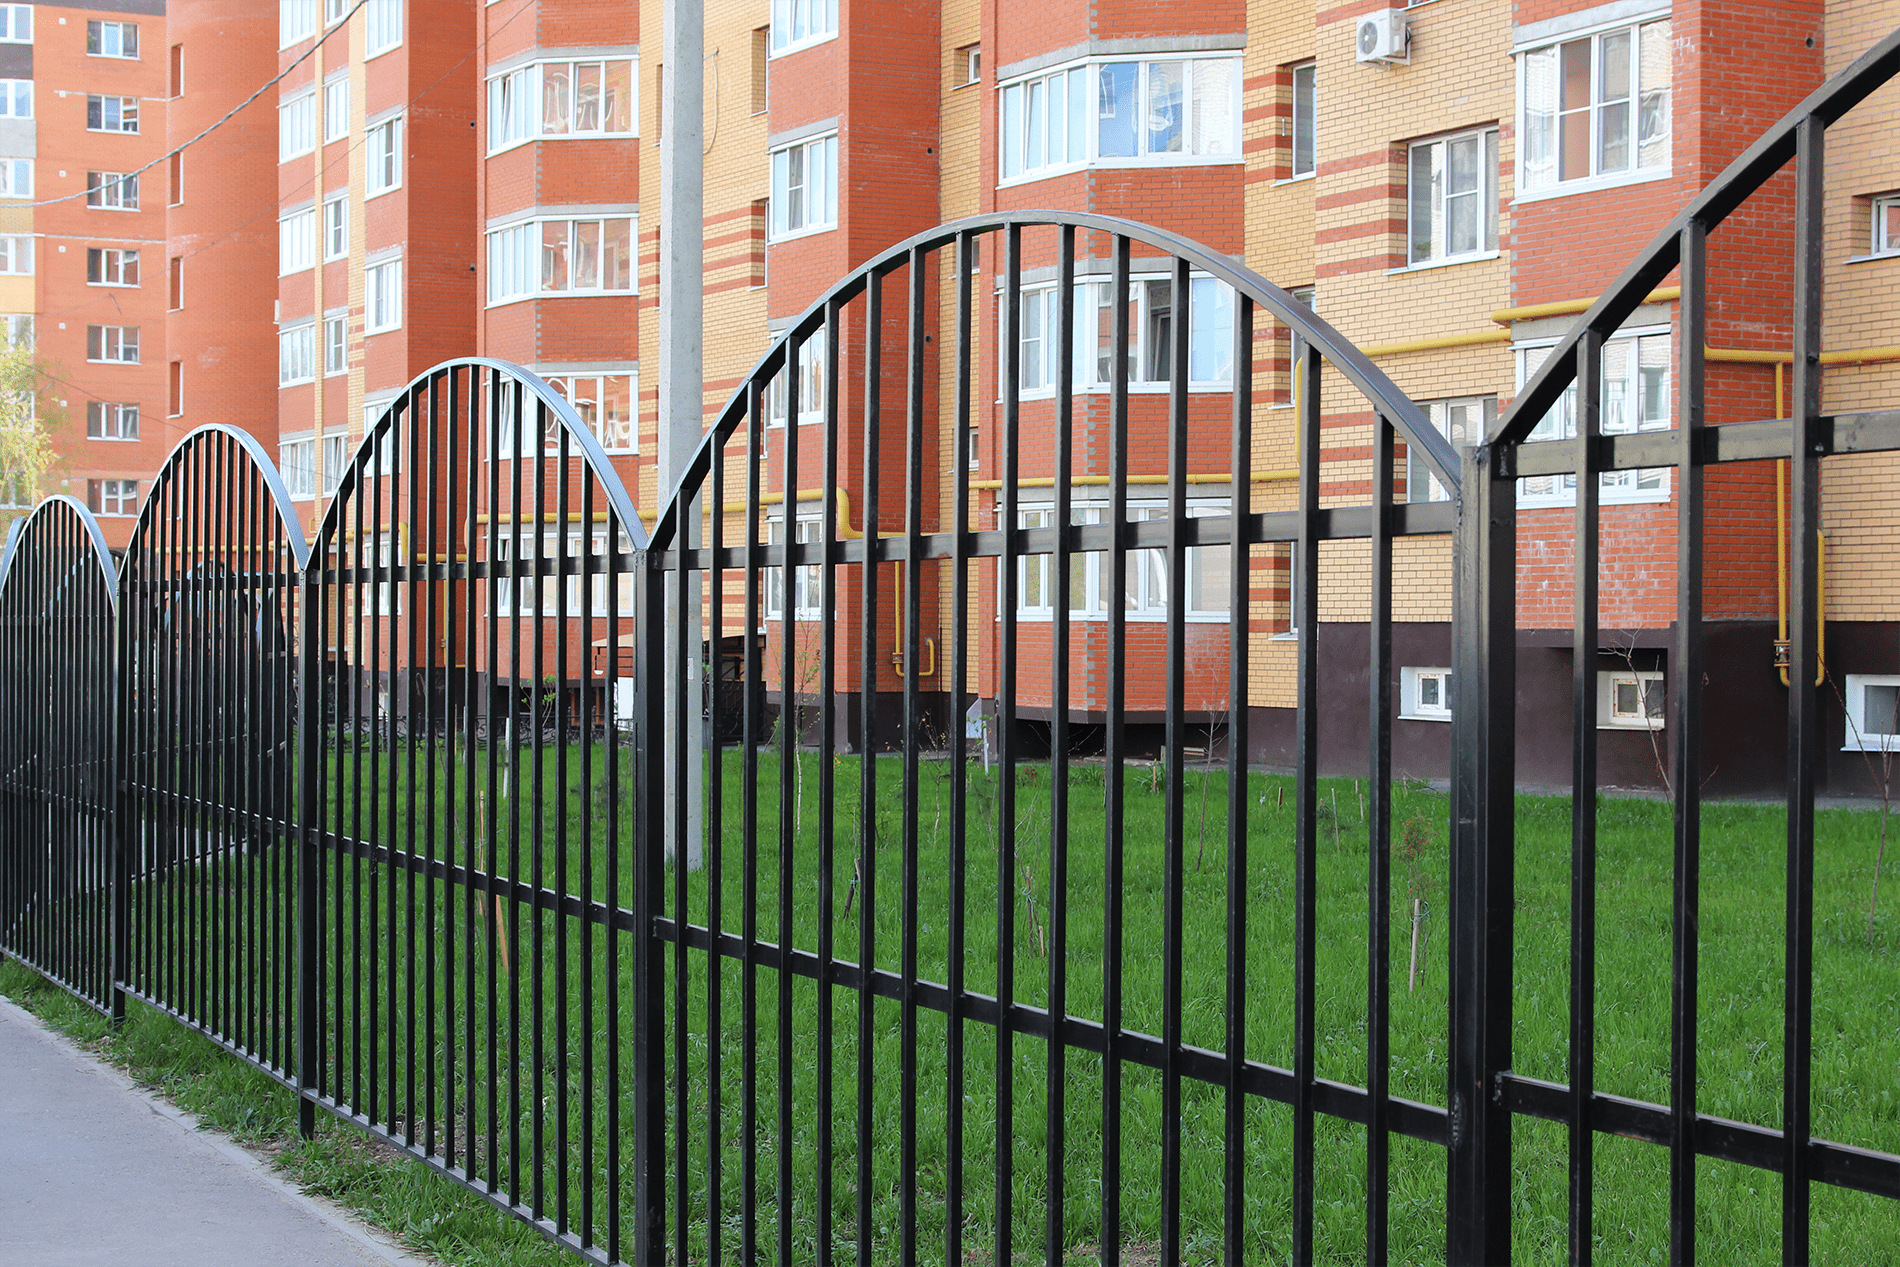 Fencing - Wood, Vinyl, Chain link And Iron